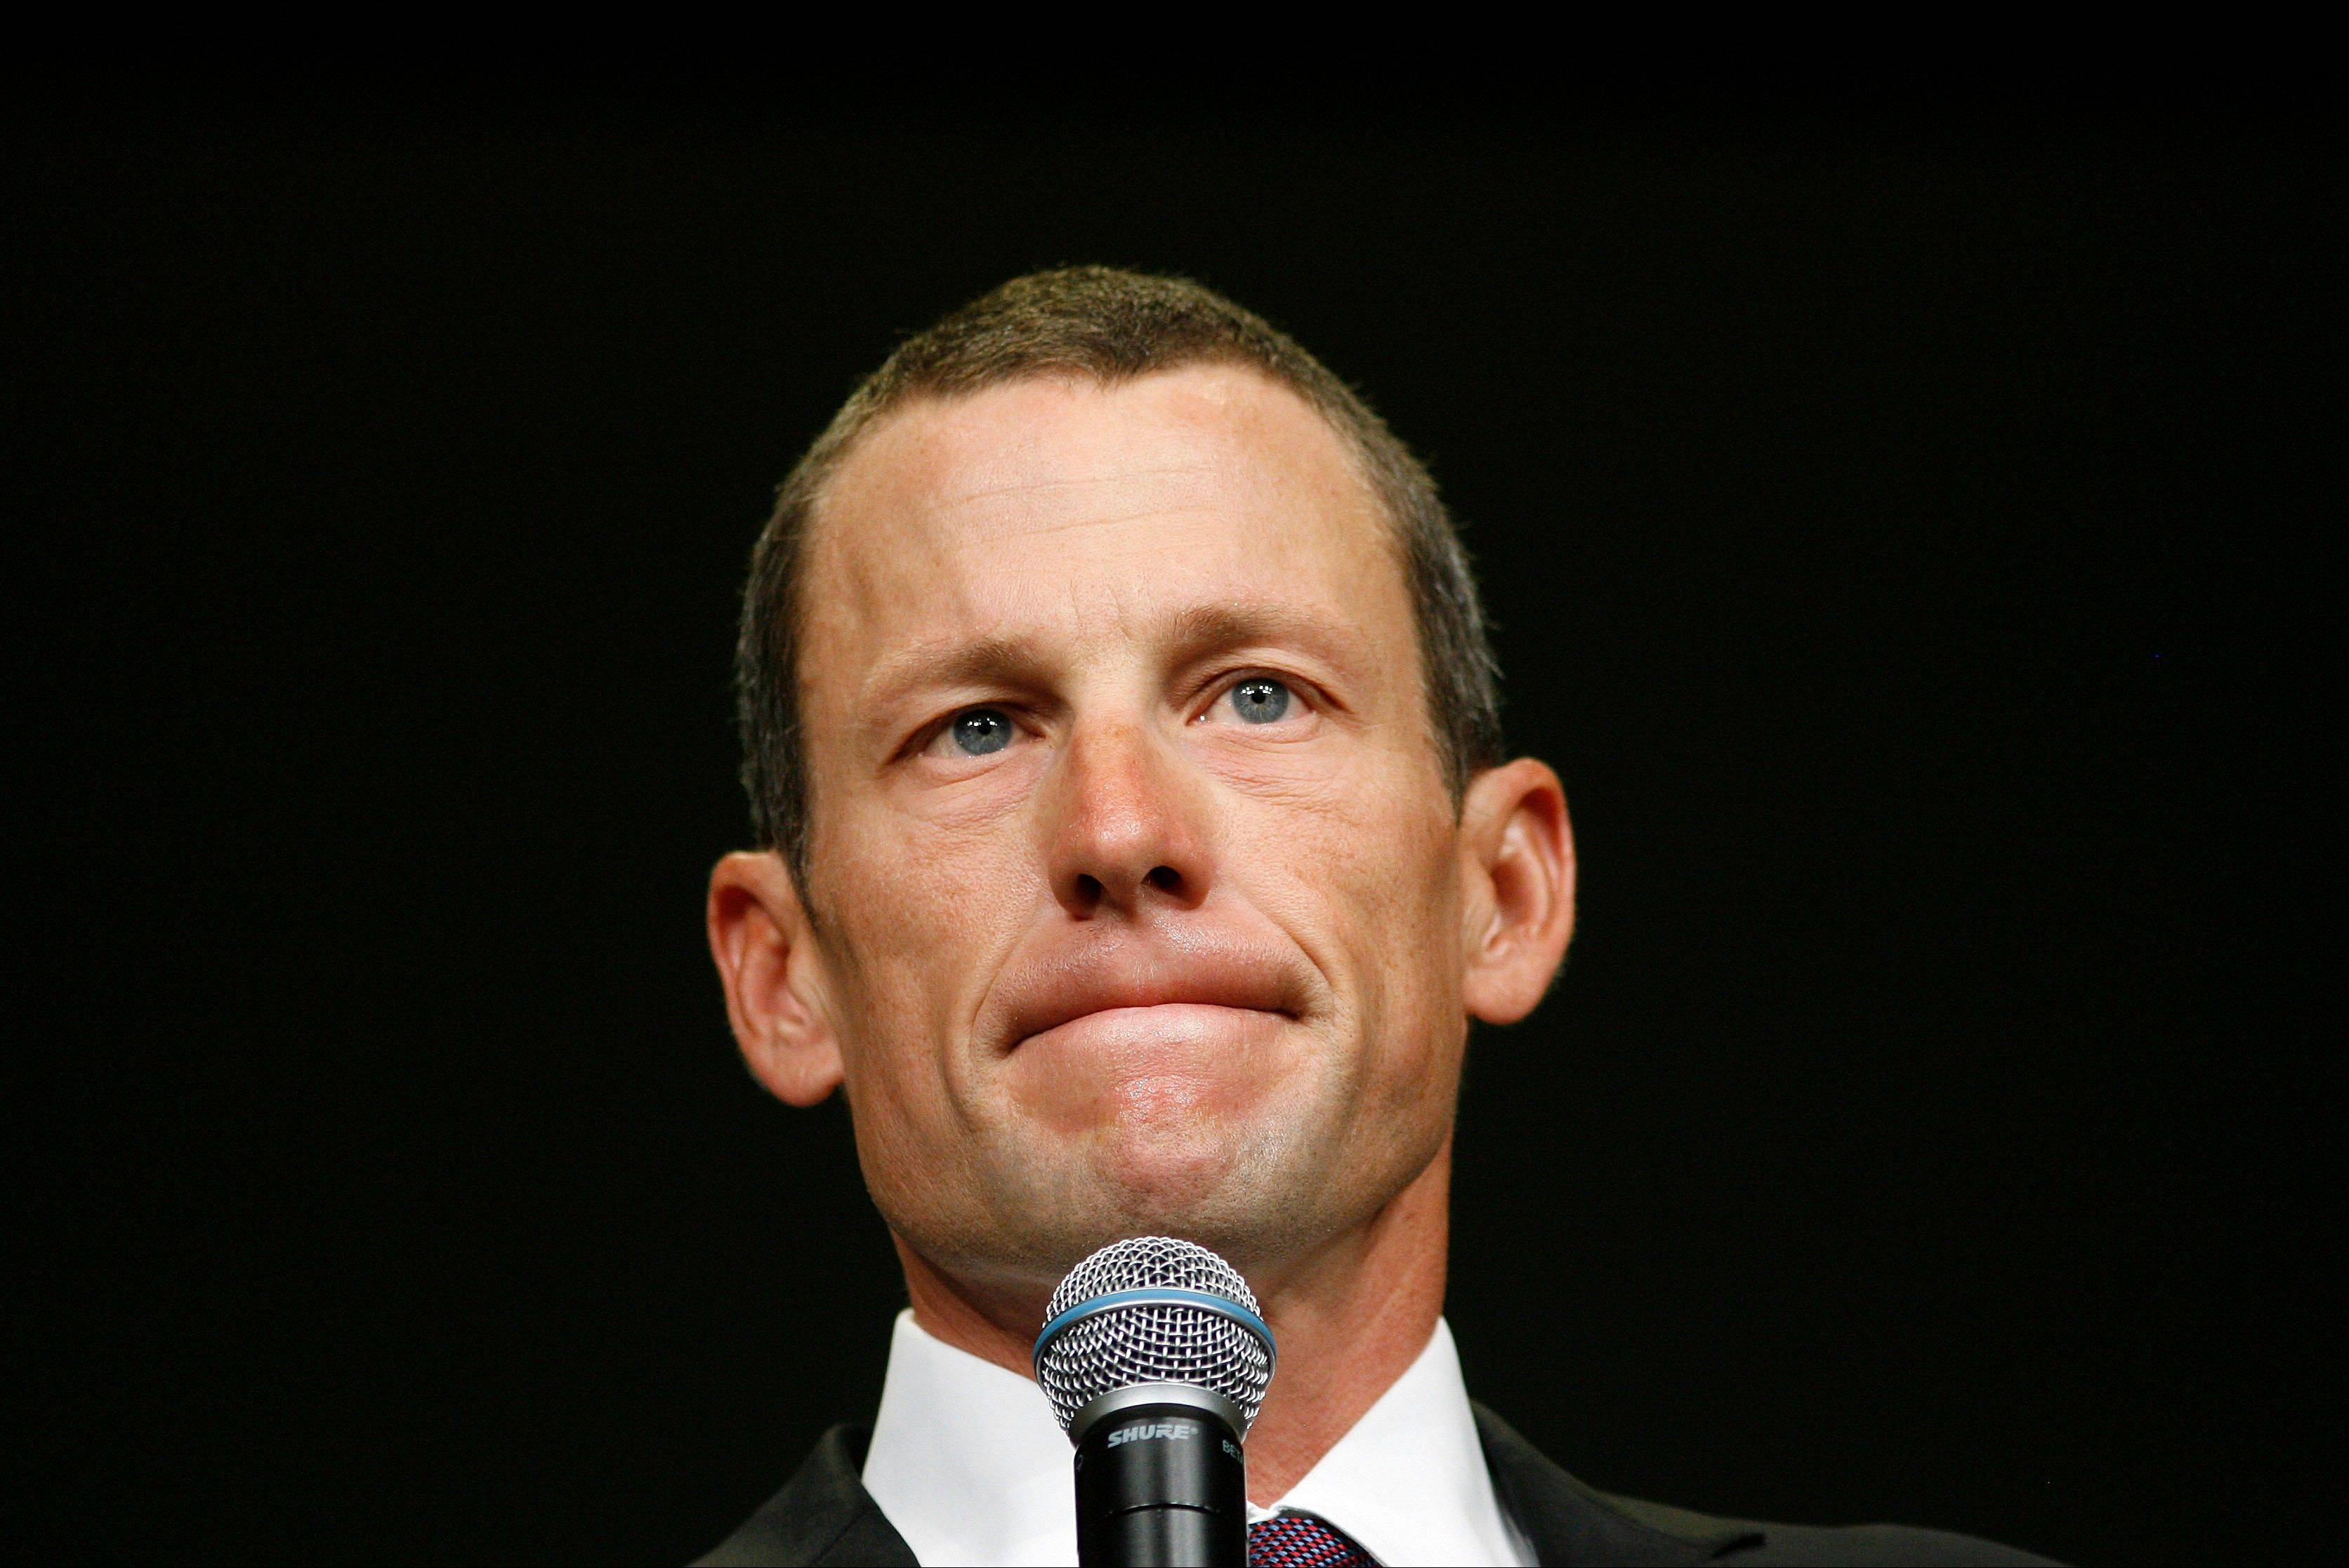 Armstrong out as Livestrong head, loses sponsors